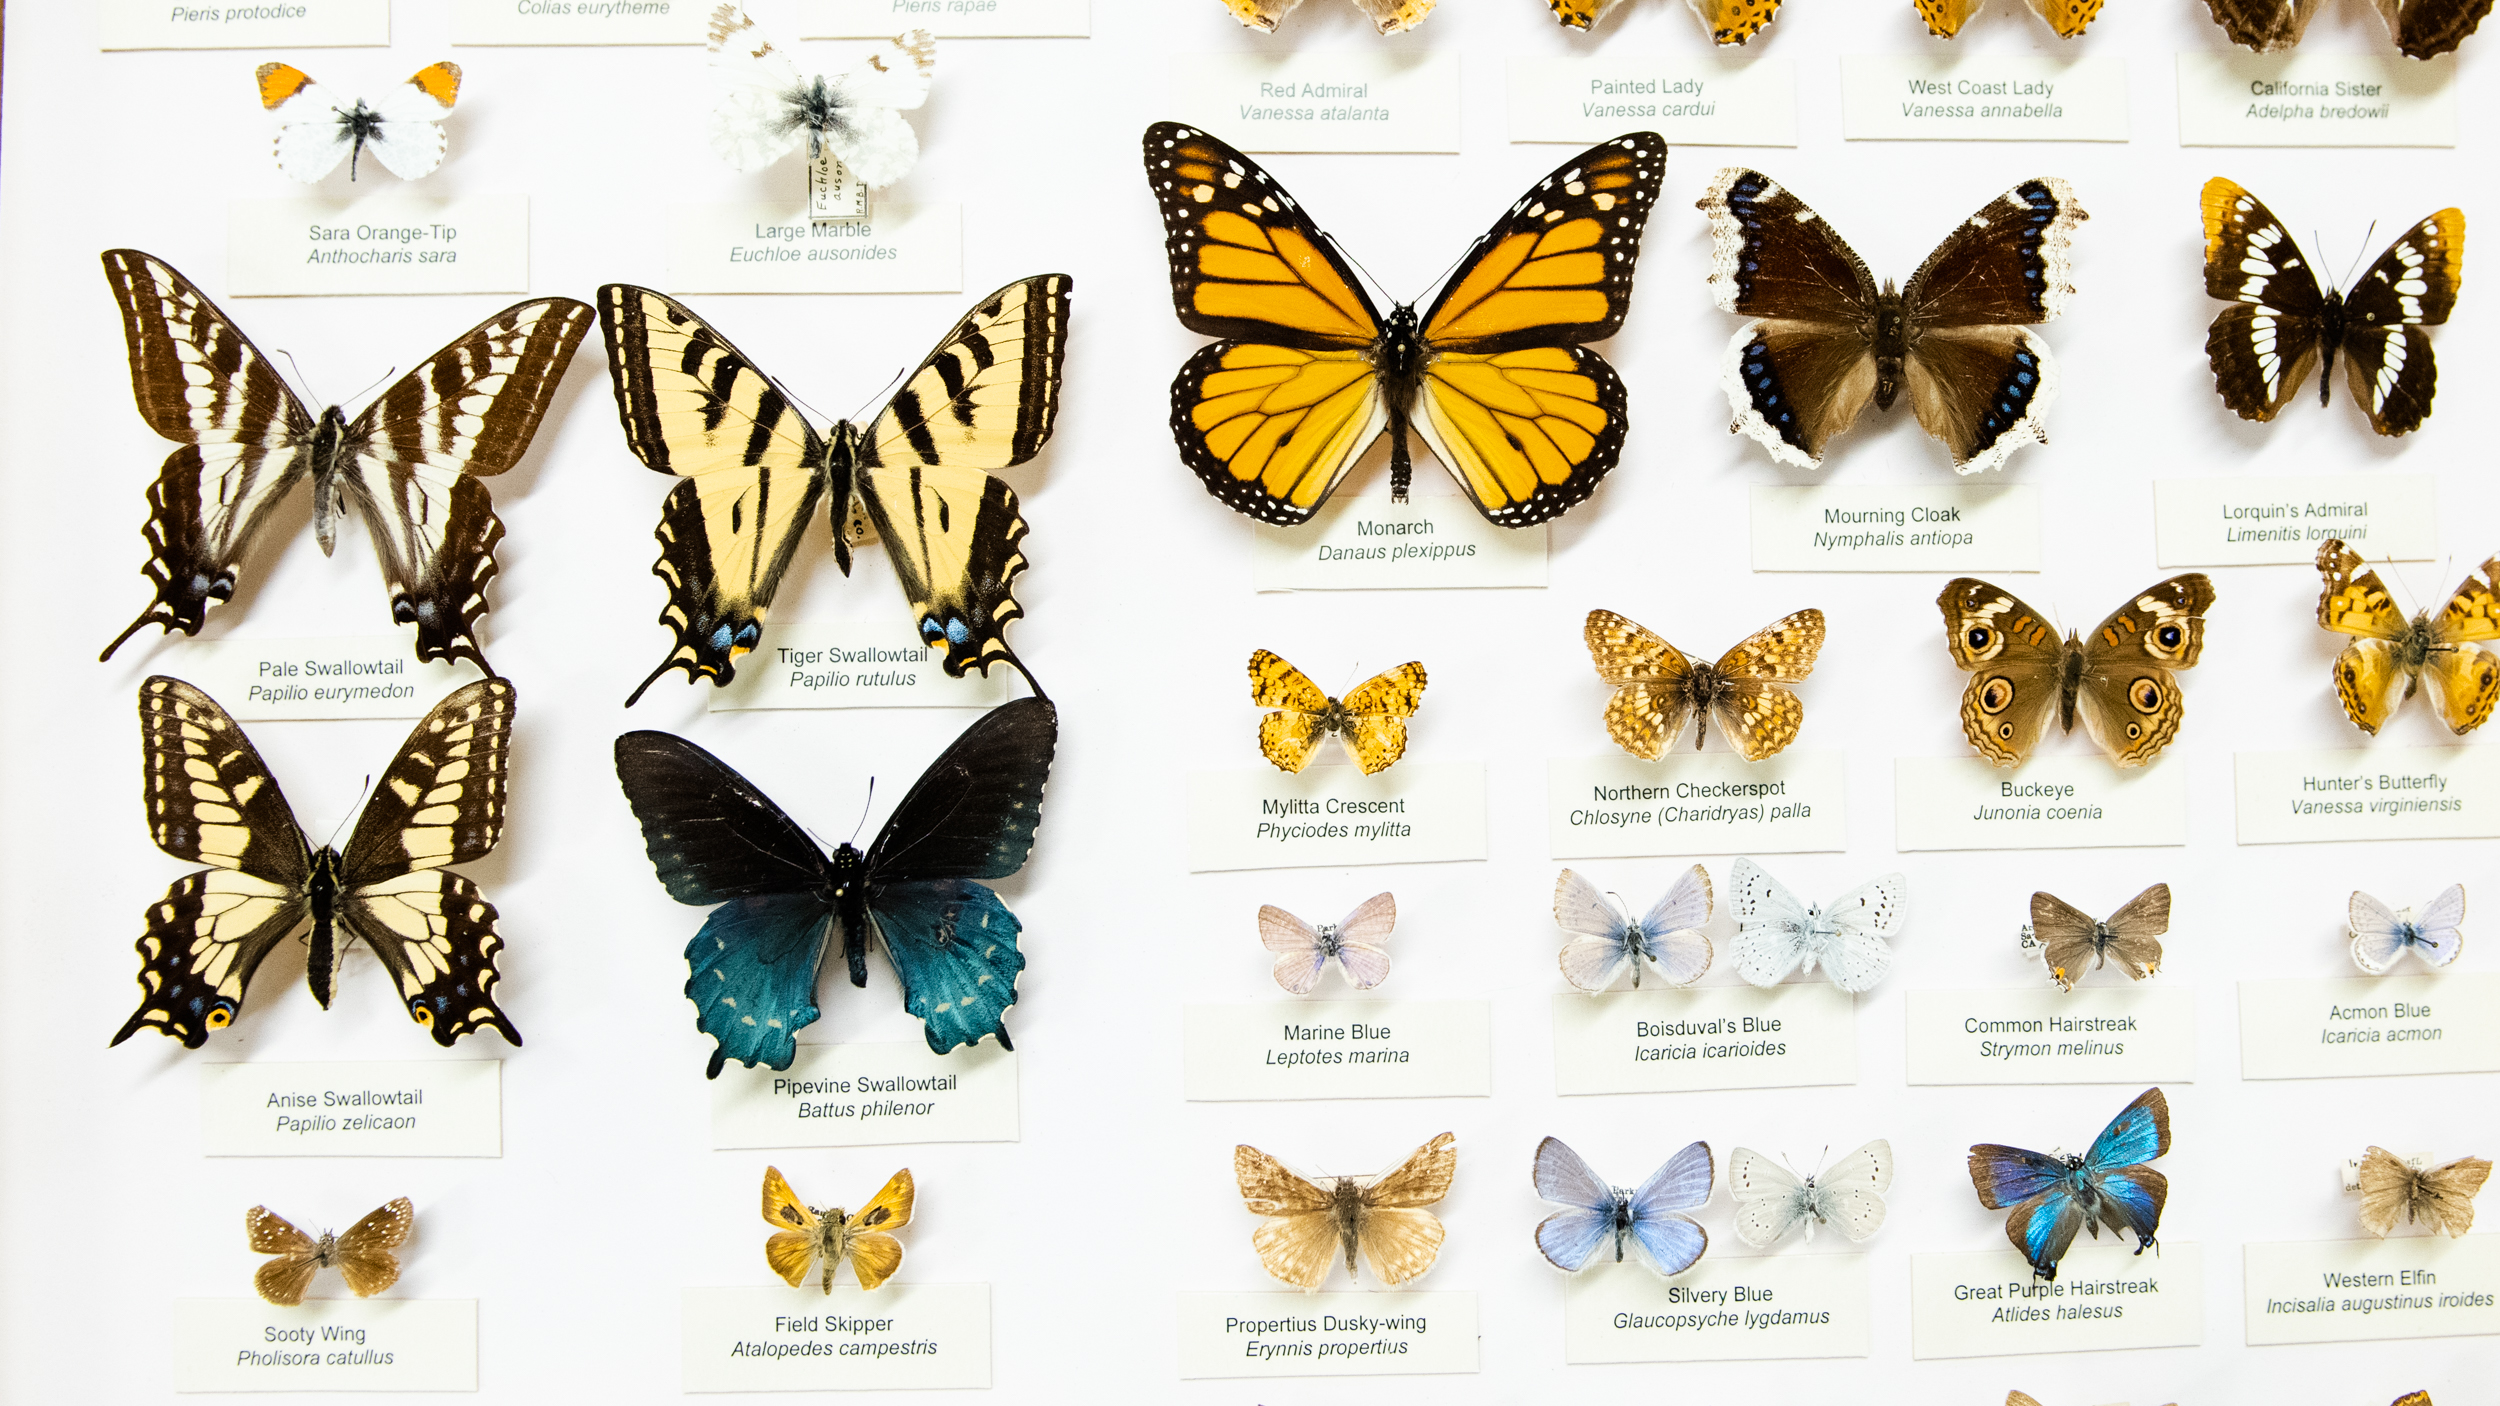 """ Butterflies of California "" display at the Bohart Museum of Entomology in Davis, California"